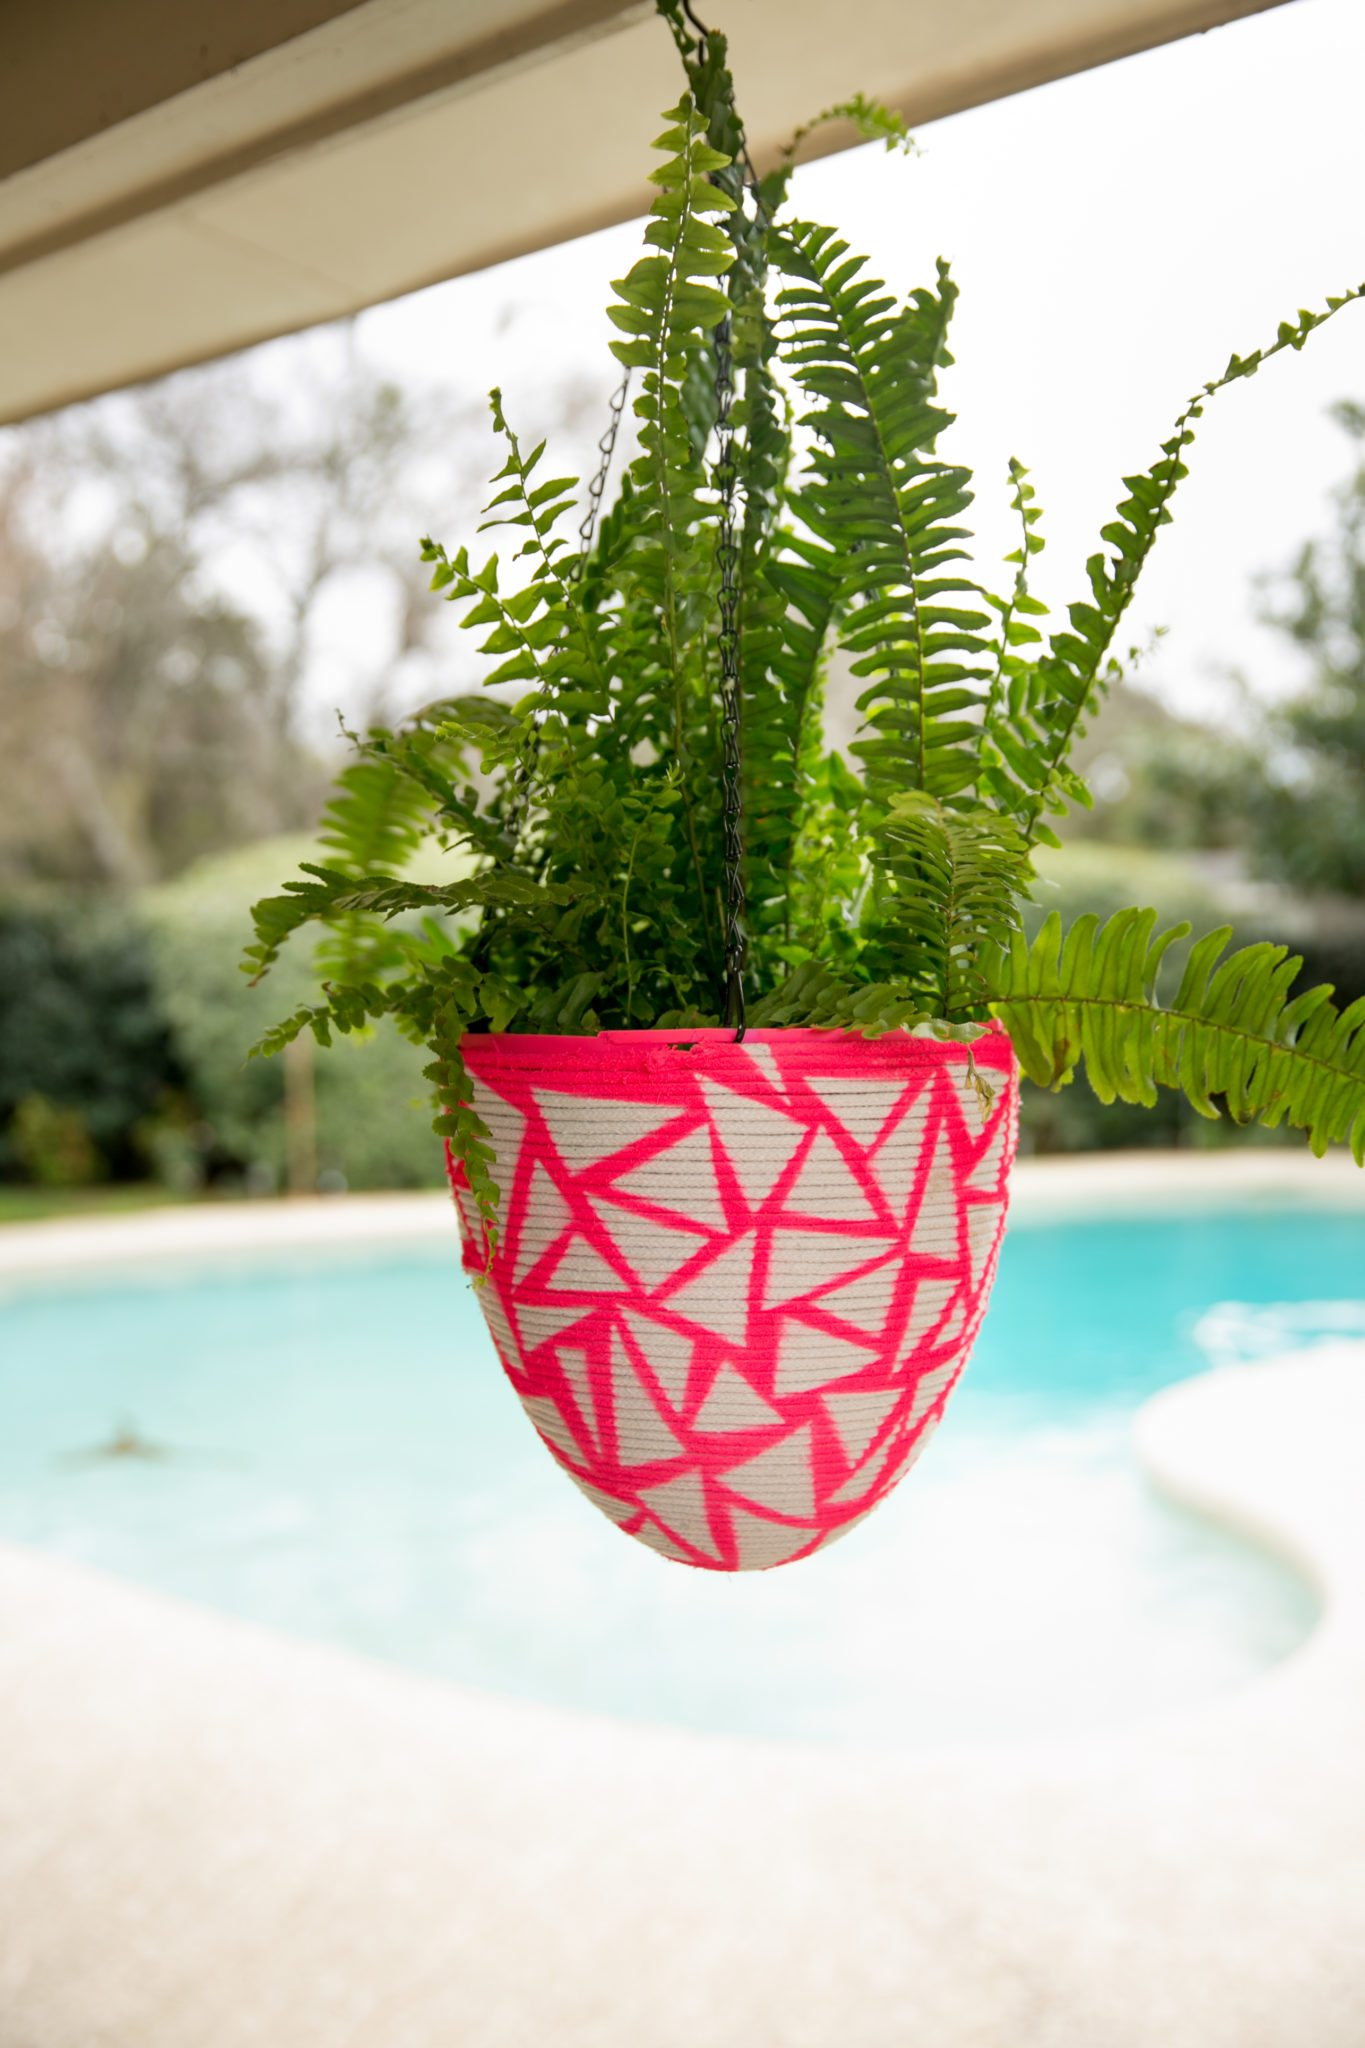 How to make a hanging basket for plants out of a plastic Easter egg.